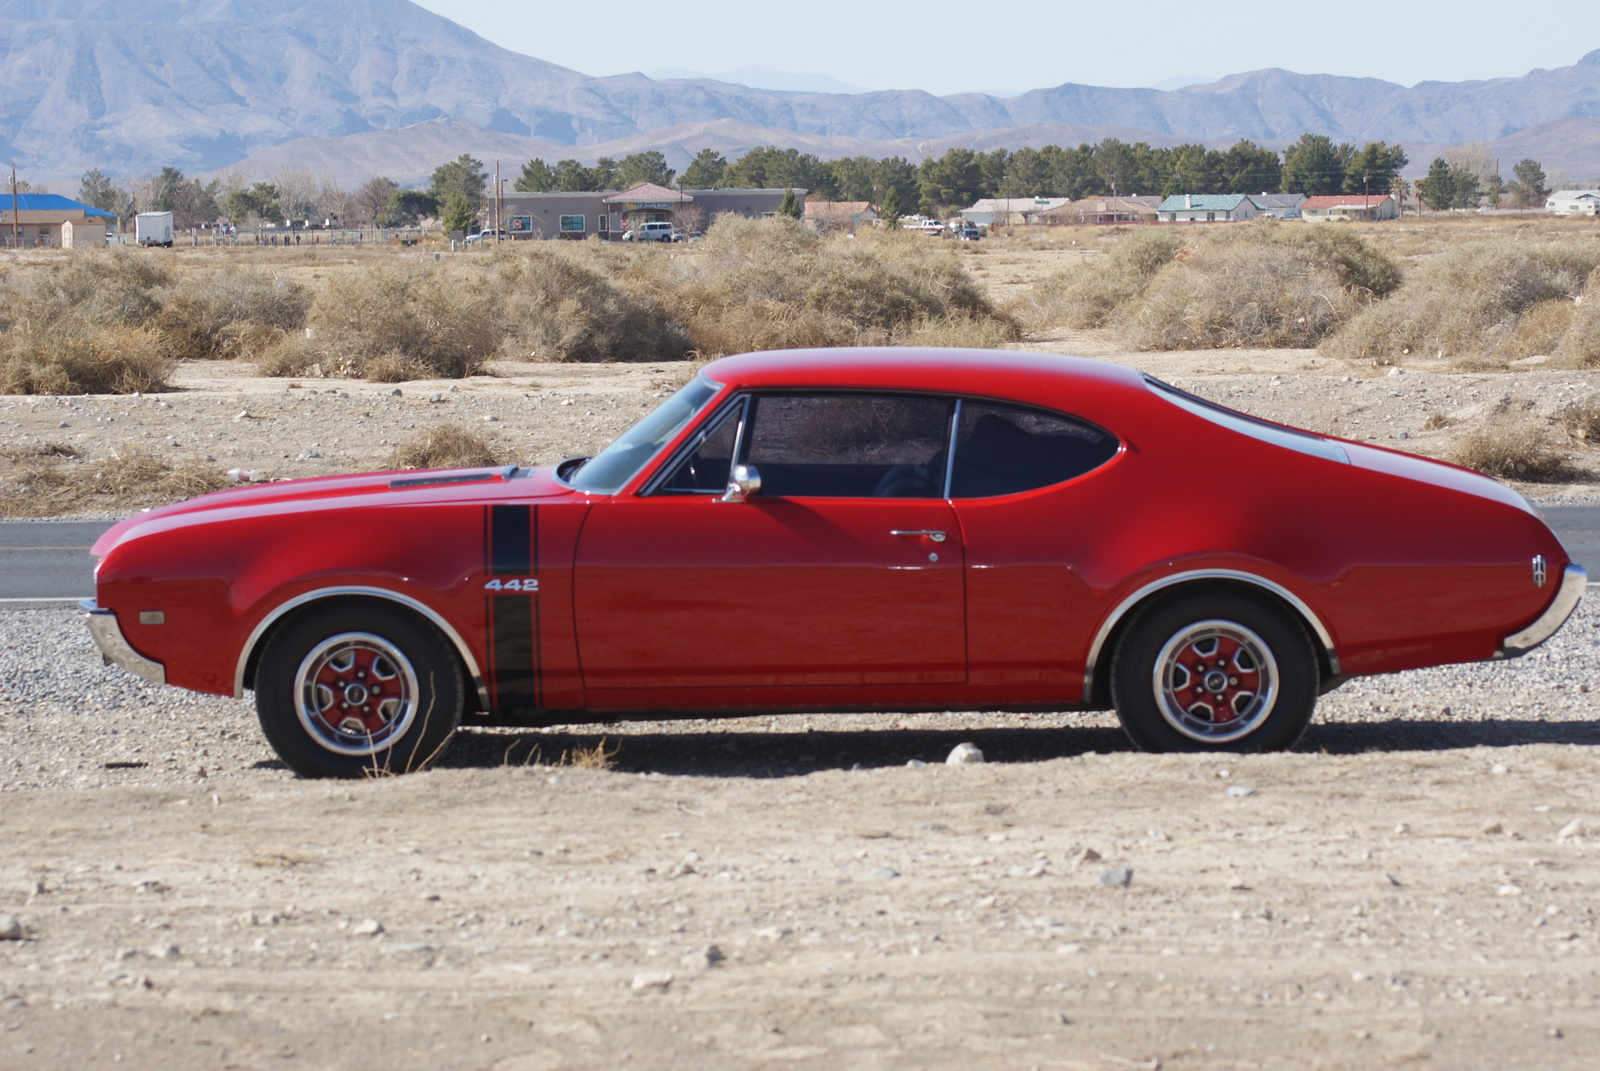 oldsmobile 442 related images start 0